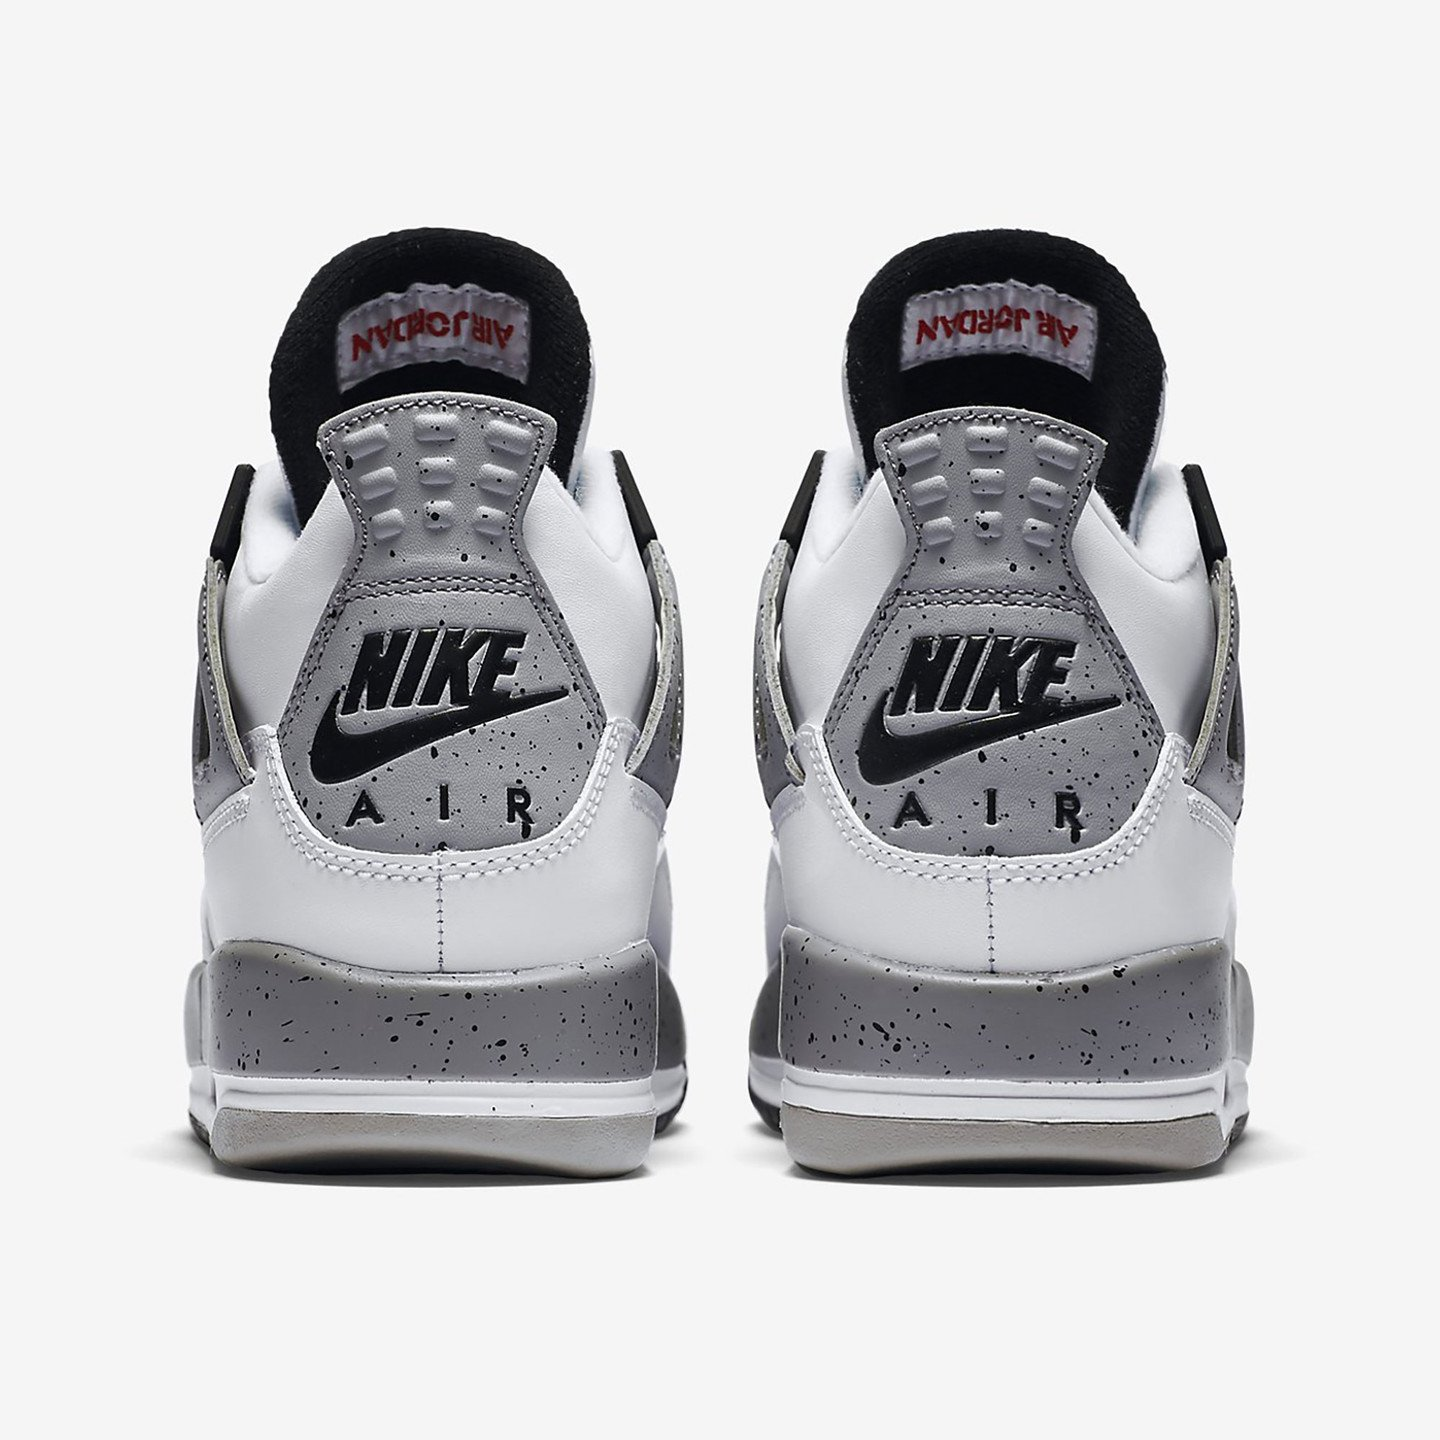 Nike Air Jordan 4 Retro GS Cement White / Fire Red / Tech Grey / Black 836016-192-38